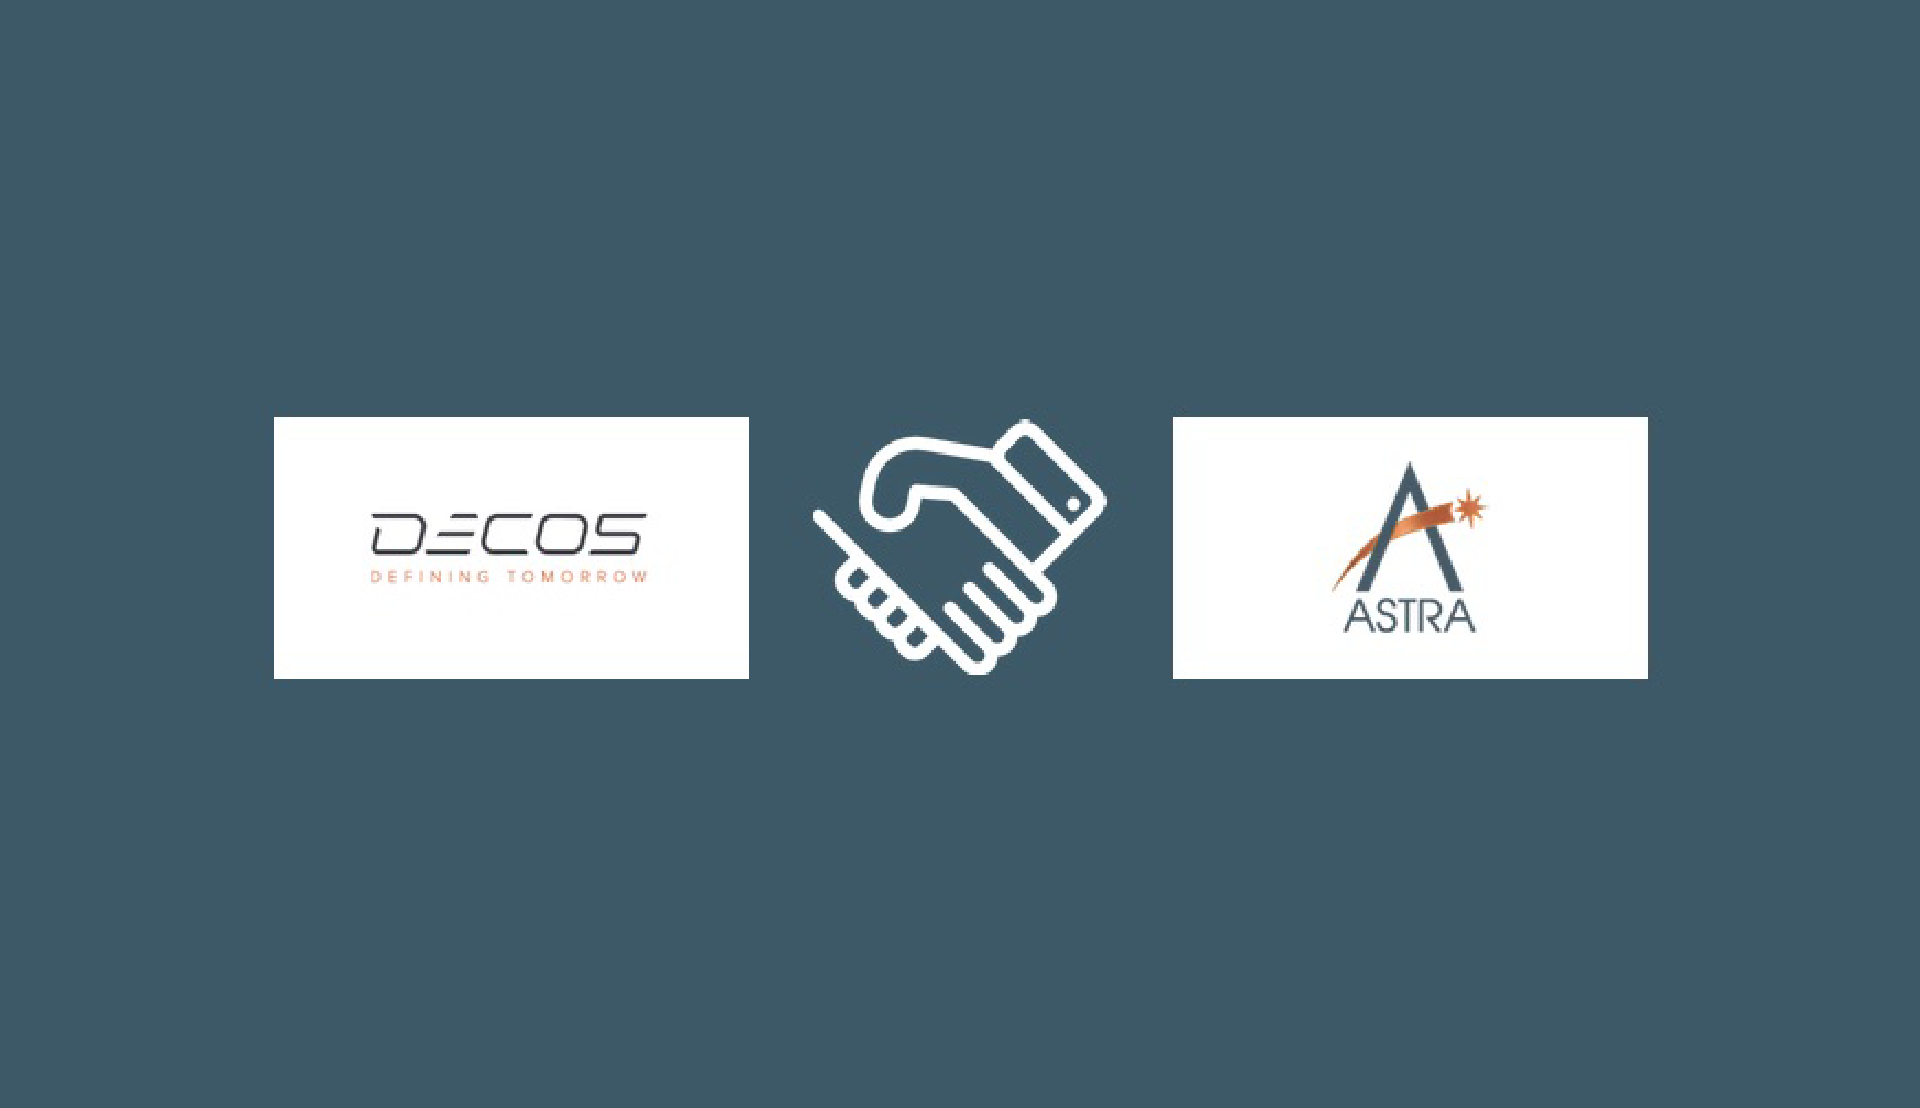 ASTRA BECOMES PARTNER WITH DECOS